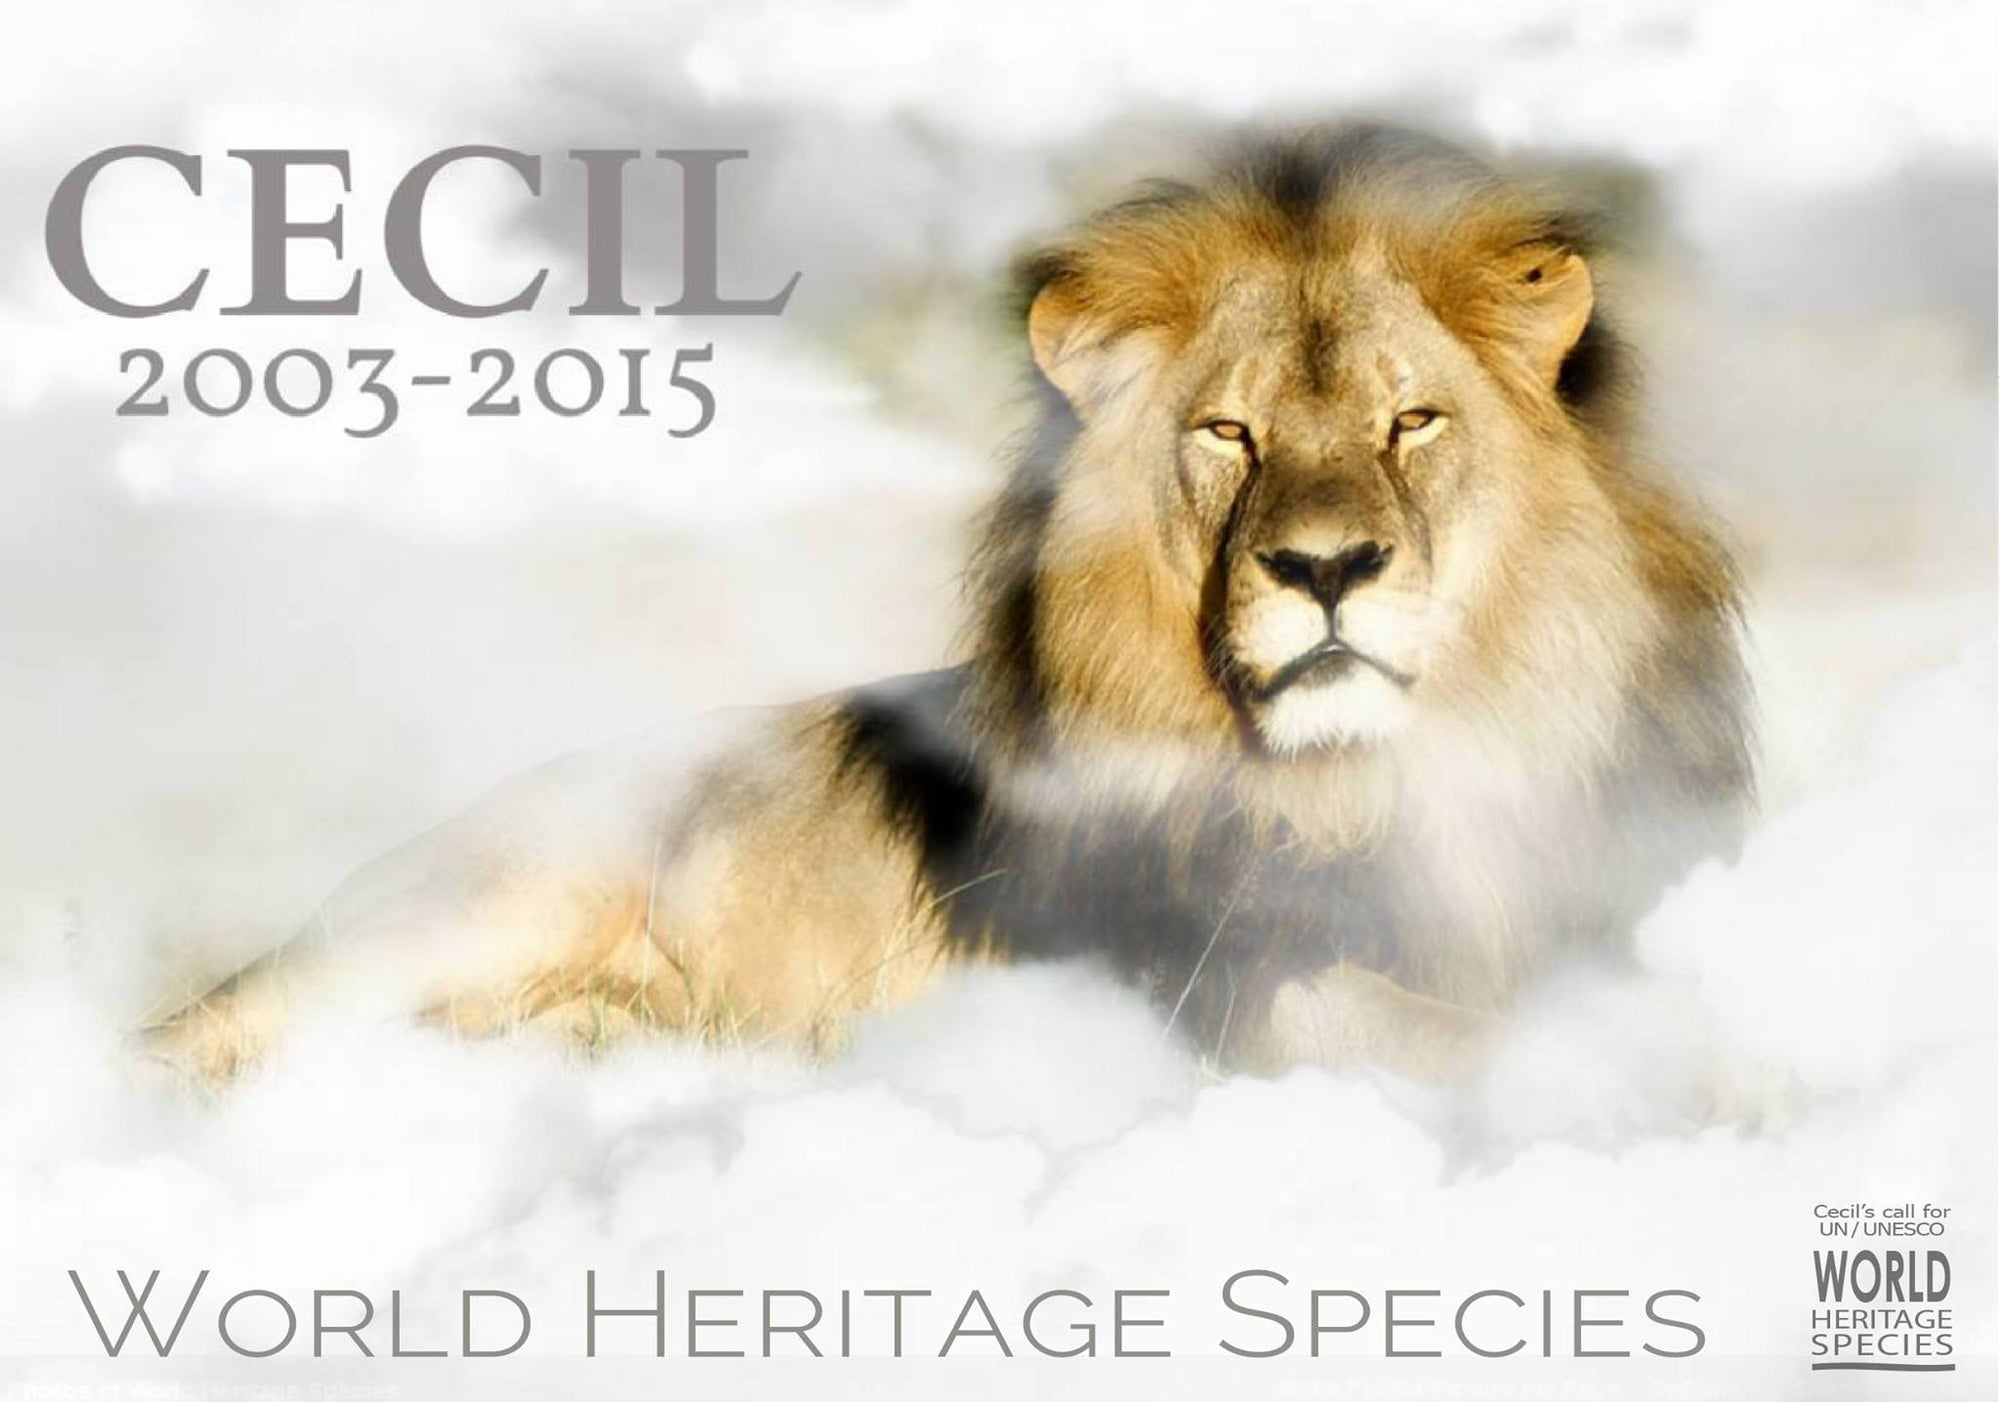 Honor Cecil by Signing World Heritage Species Petition  #WorldHeritageSpecies